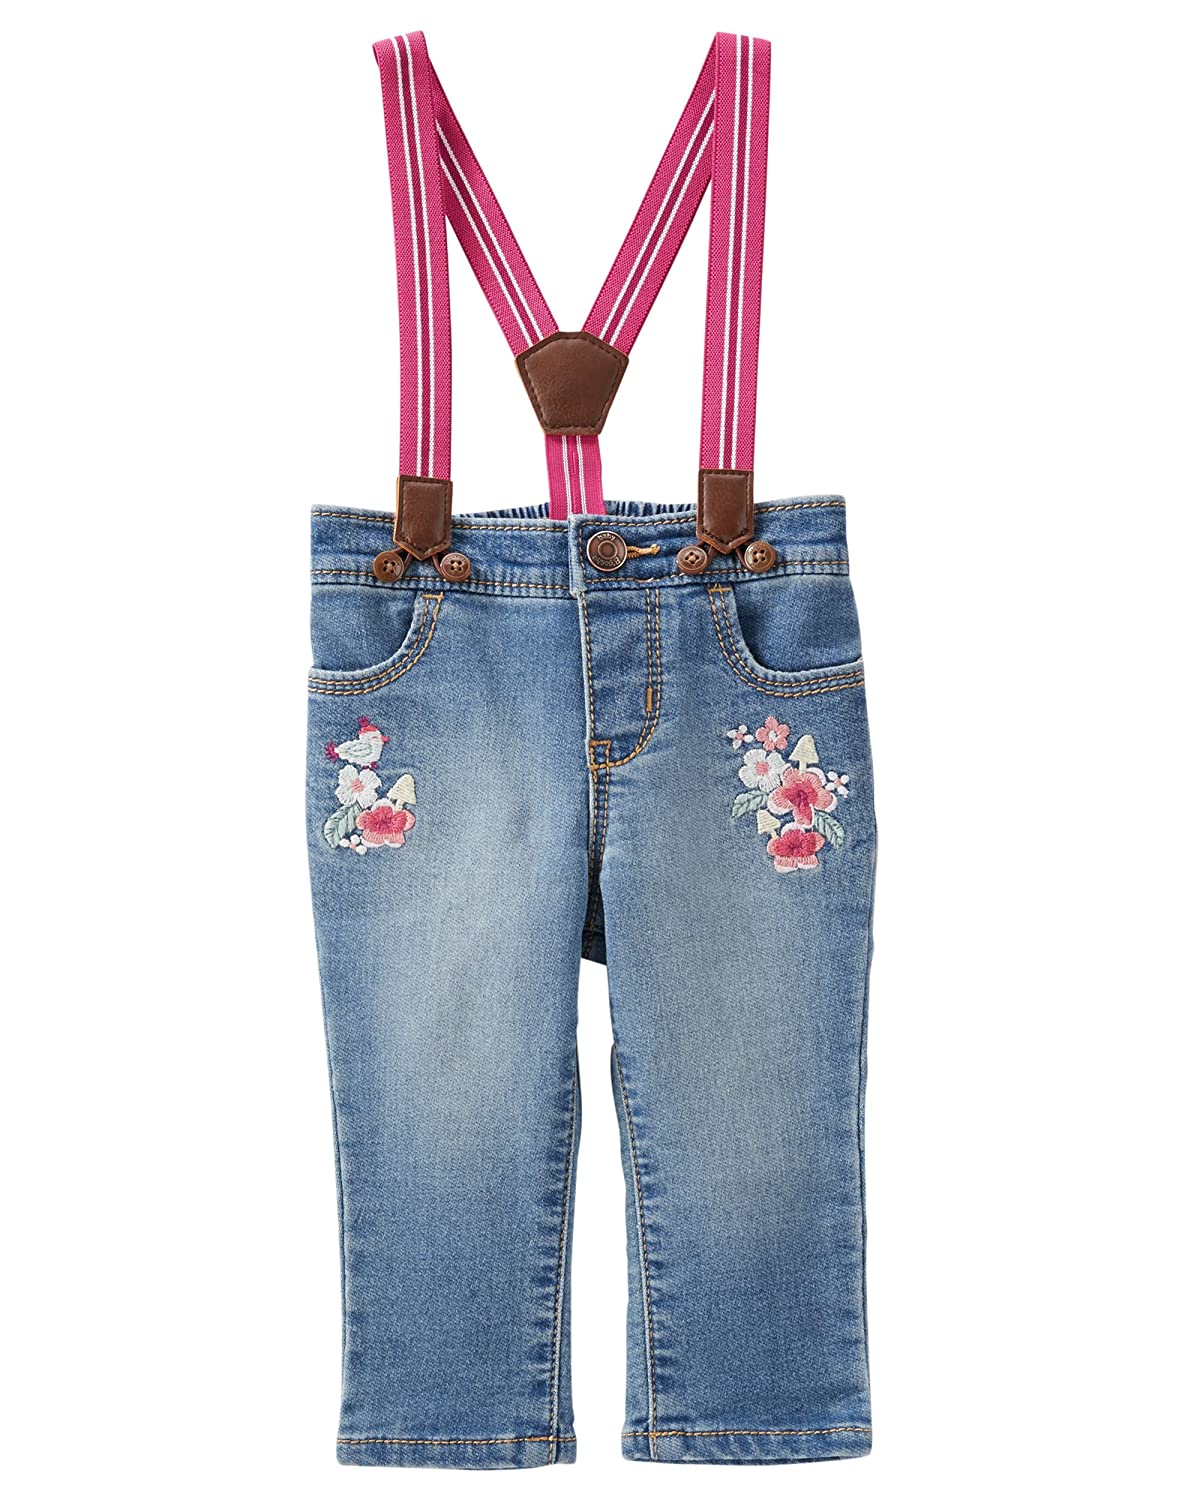 OshKosh BGosh Girls Suspender Jeans NB-5T